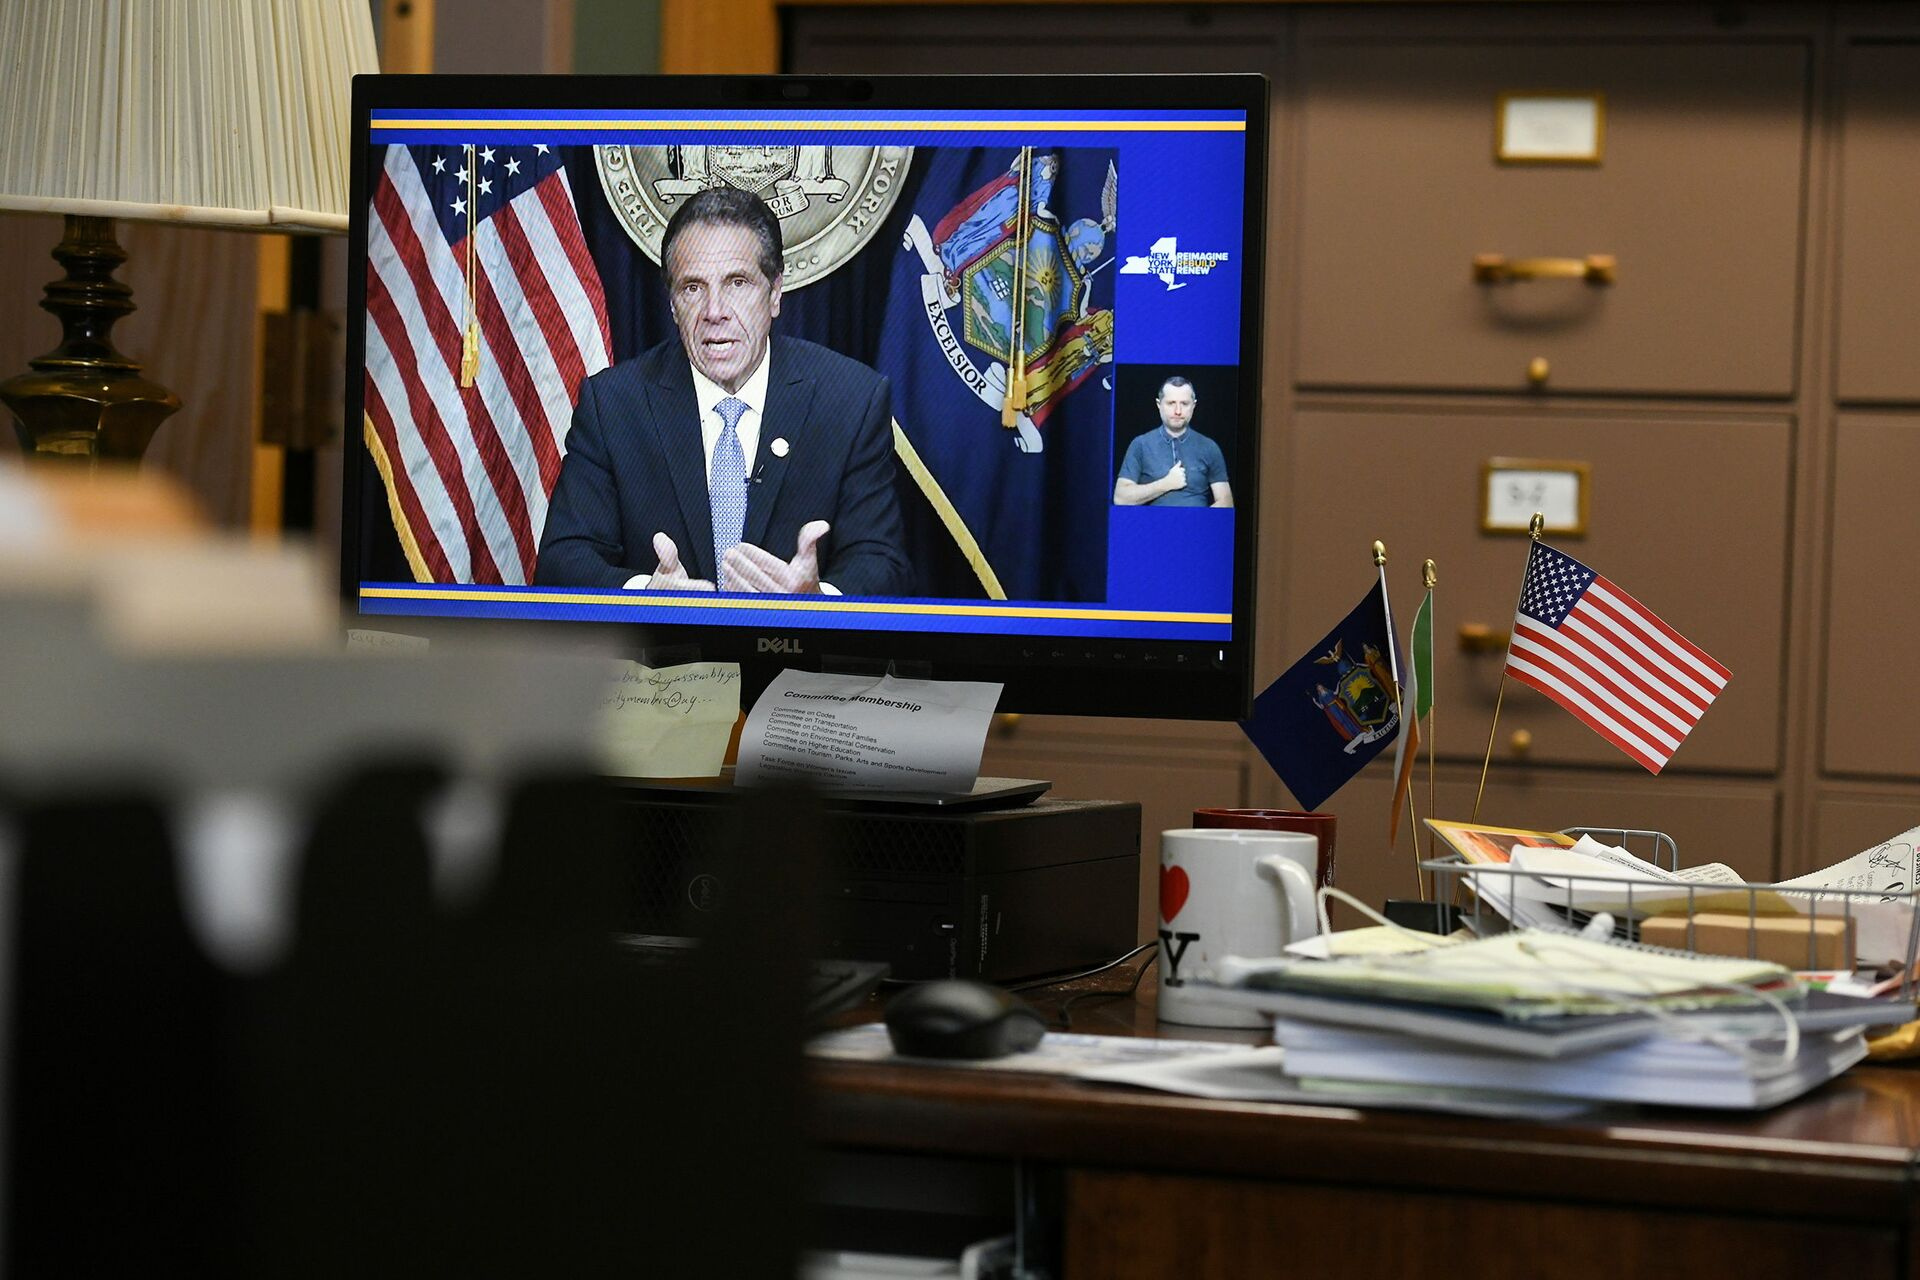 Governor Andrew Cuomo's resignation is seen on a computer screen in Assemblywoman Patricia Fahy's office at the Legislative Office Building in Albany, New York, U.S., August 10, 2021 - Sputnik International, 1920, 07.09.2021